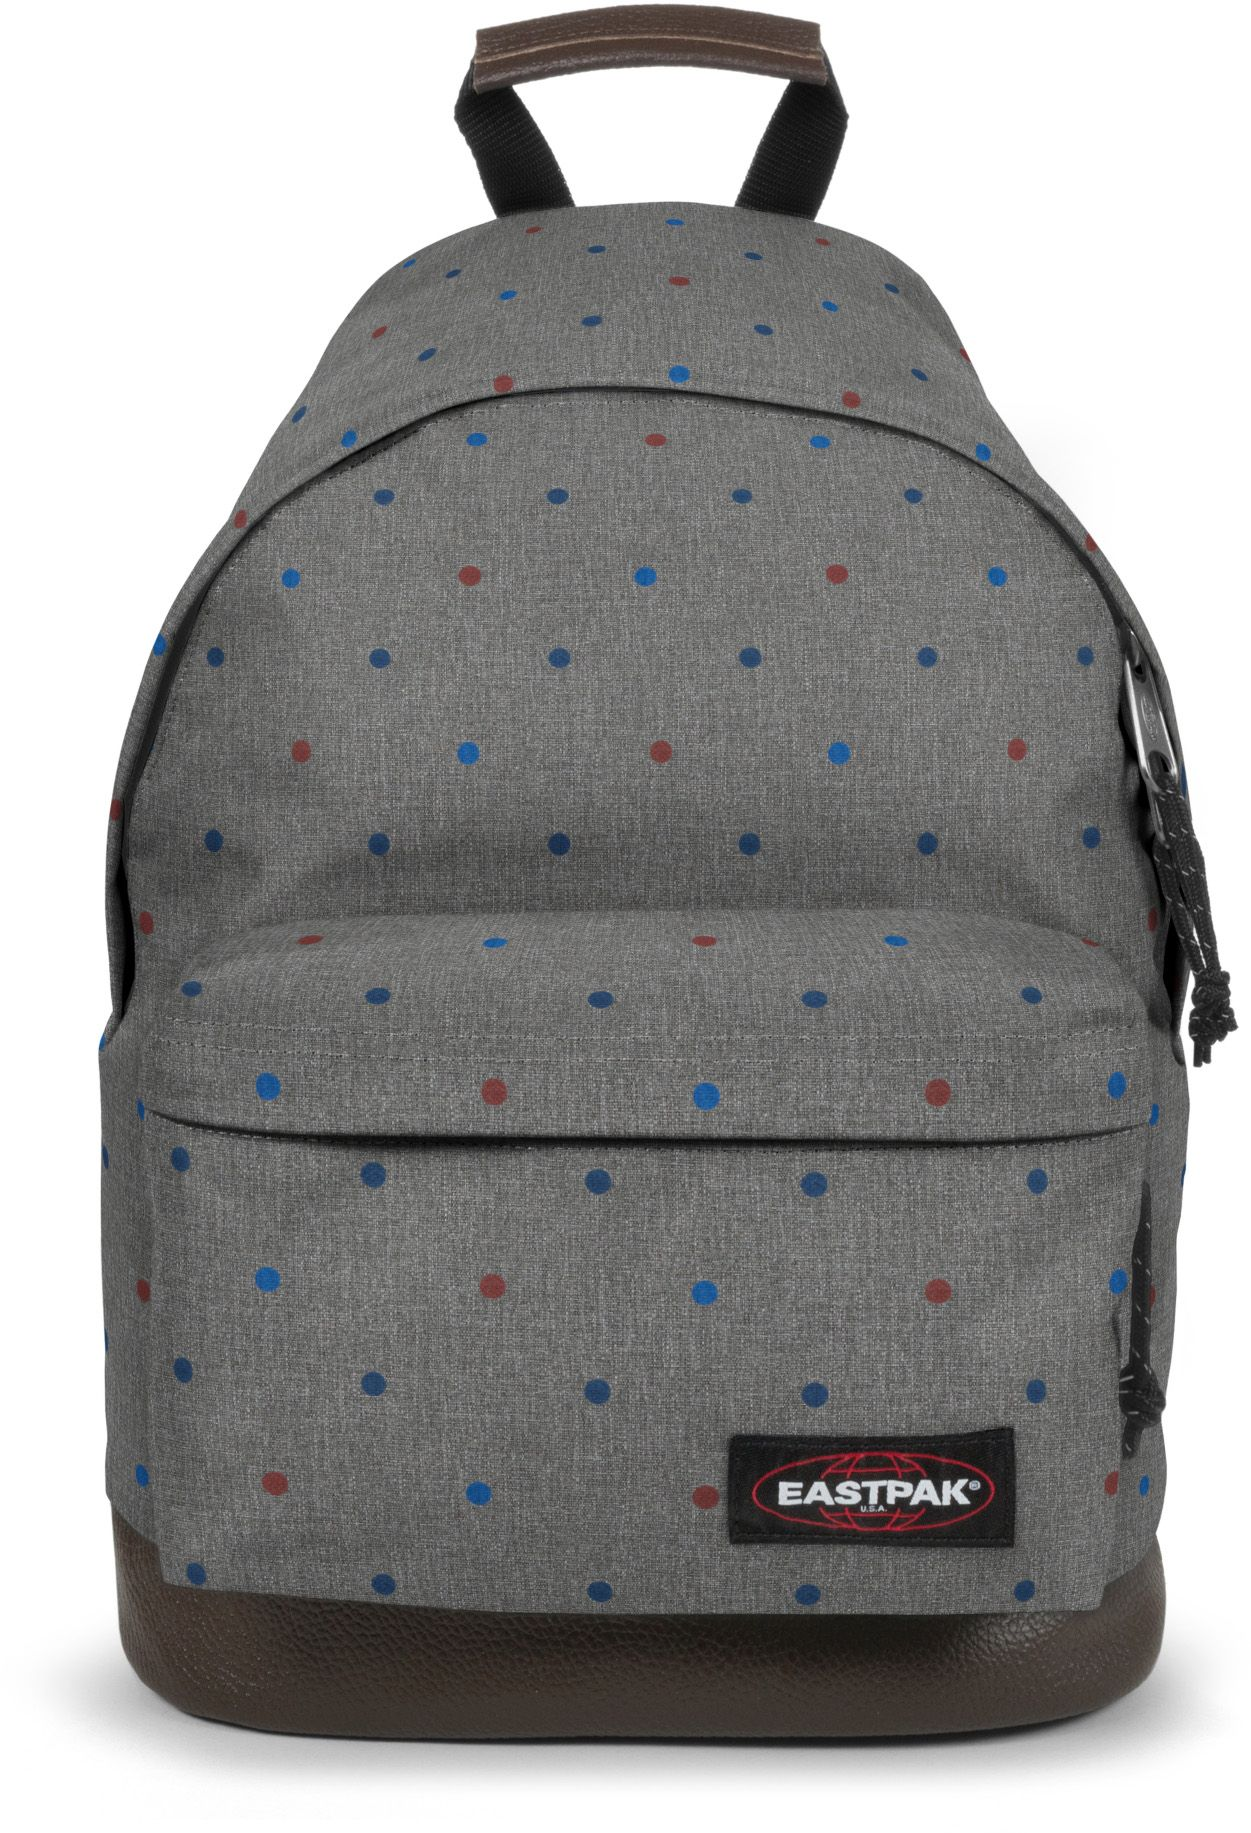 EASTPAK Eastpak Rucksack mit Laptopfach, »WYOMING trio dots«